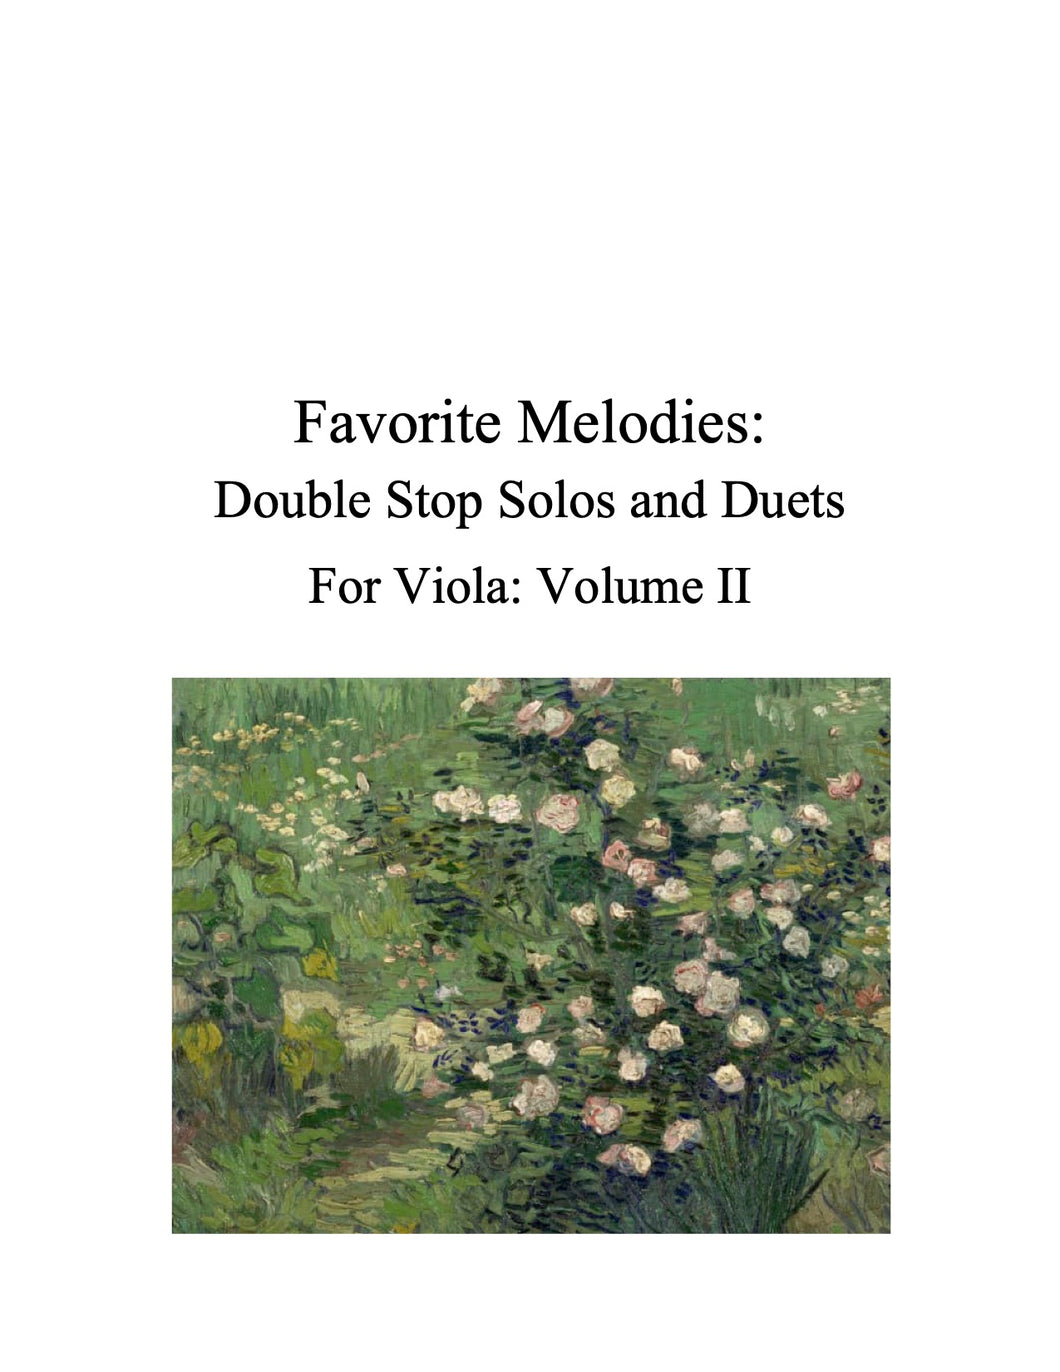 087 - Favorite Melodies II: Double Stop Solos and Duets for Viola (with 10 Suzuki Bk. I pieces)